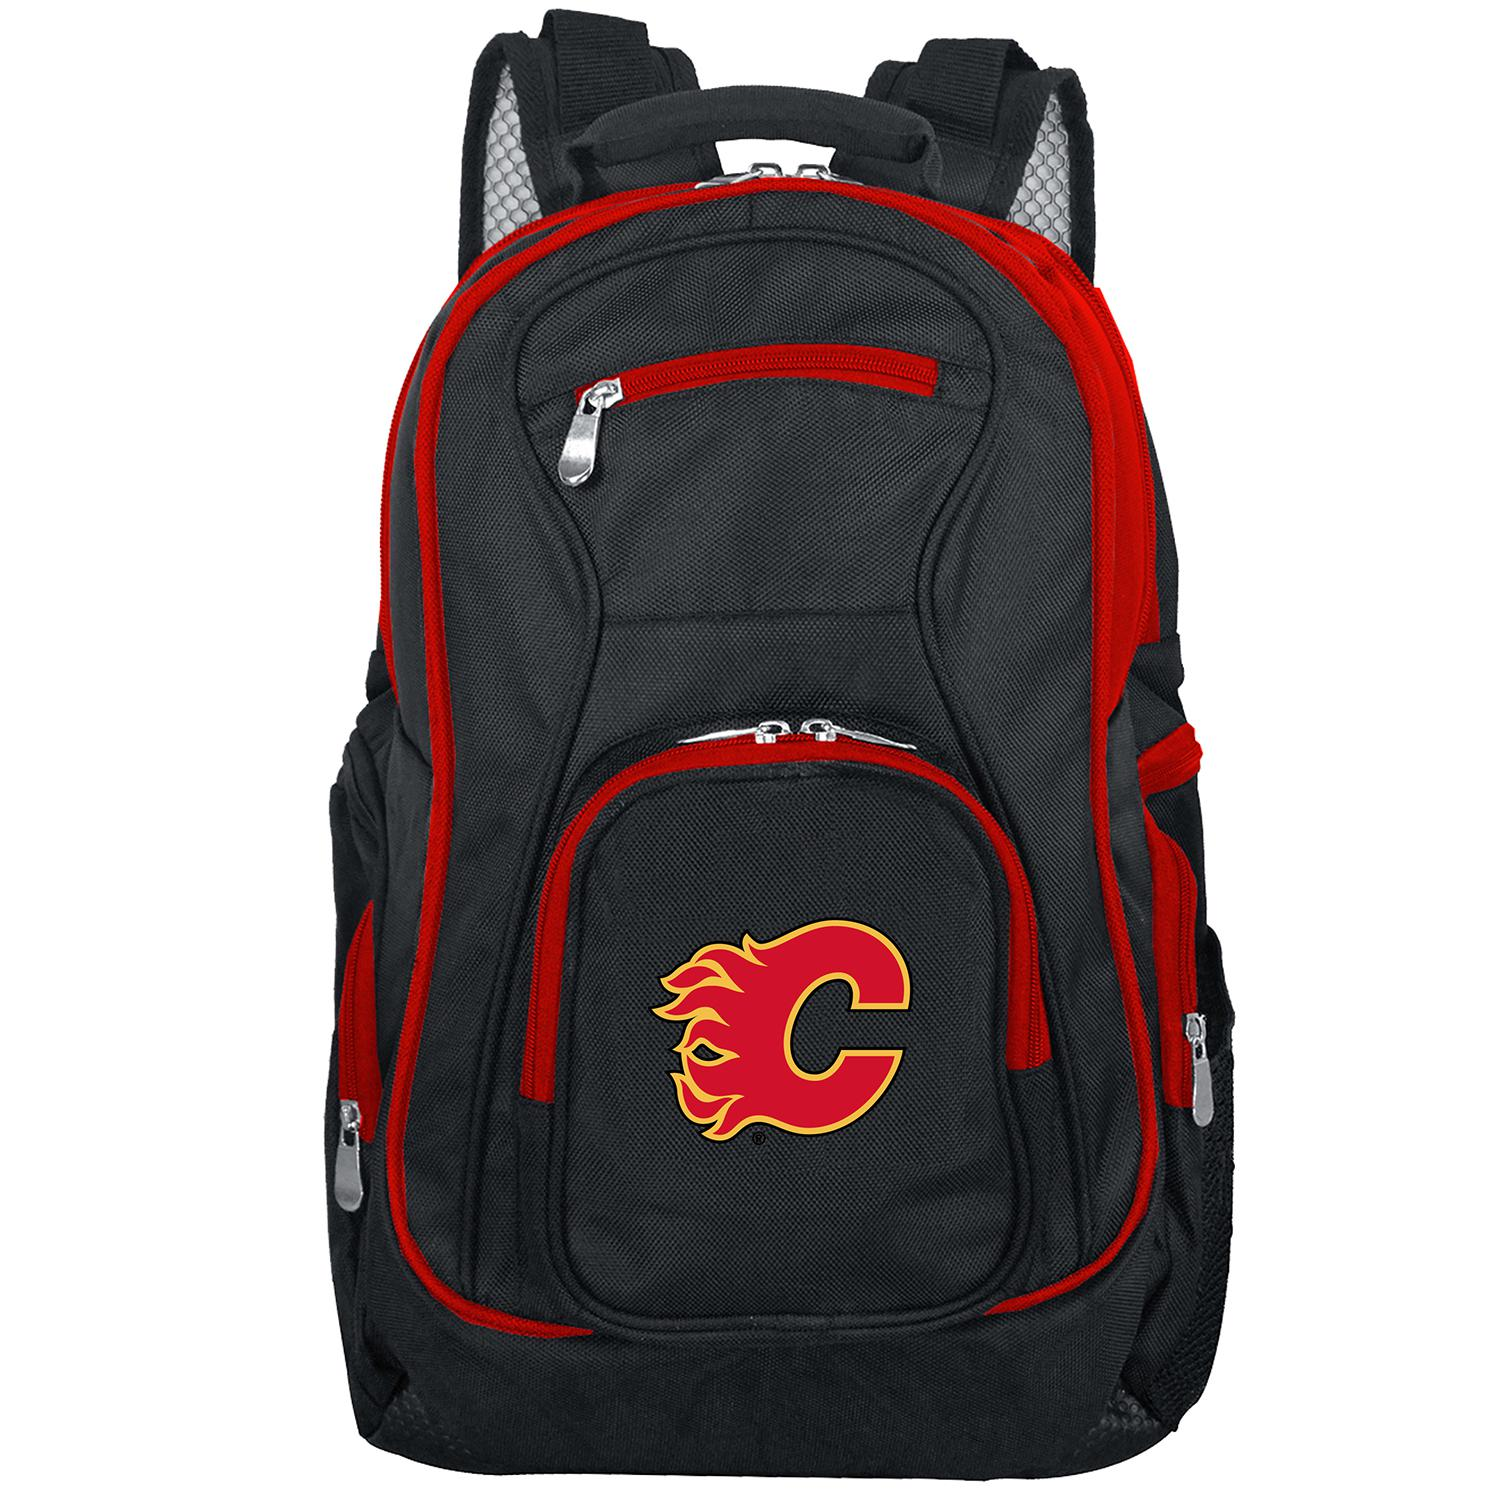 NHL Calgary Flames Premium Laptop Backpack with Colored Trim